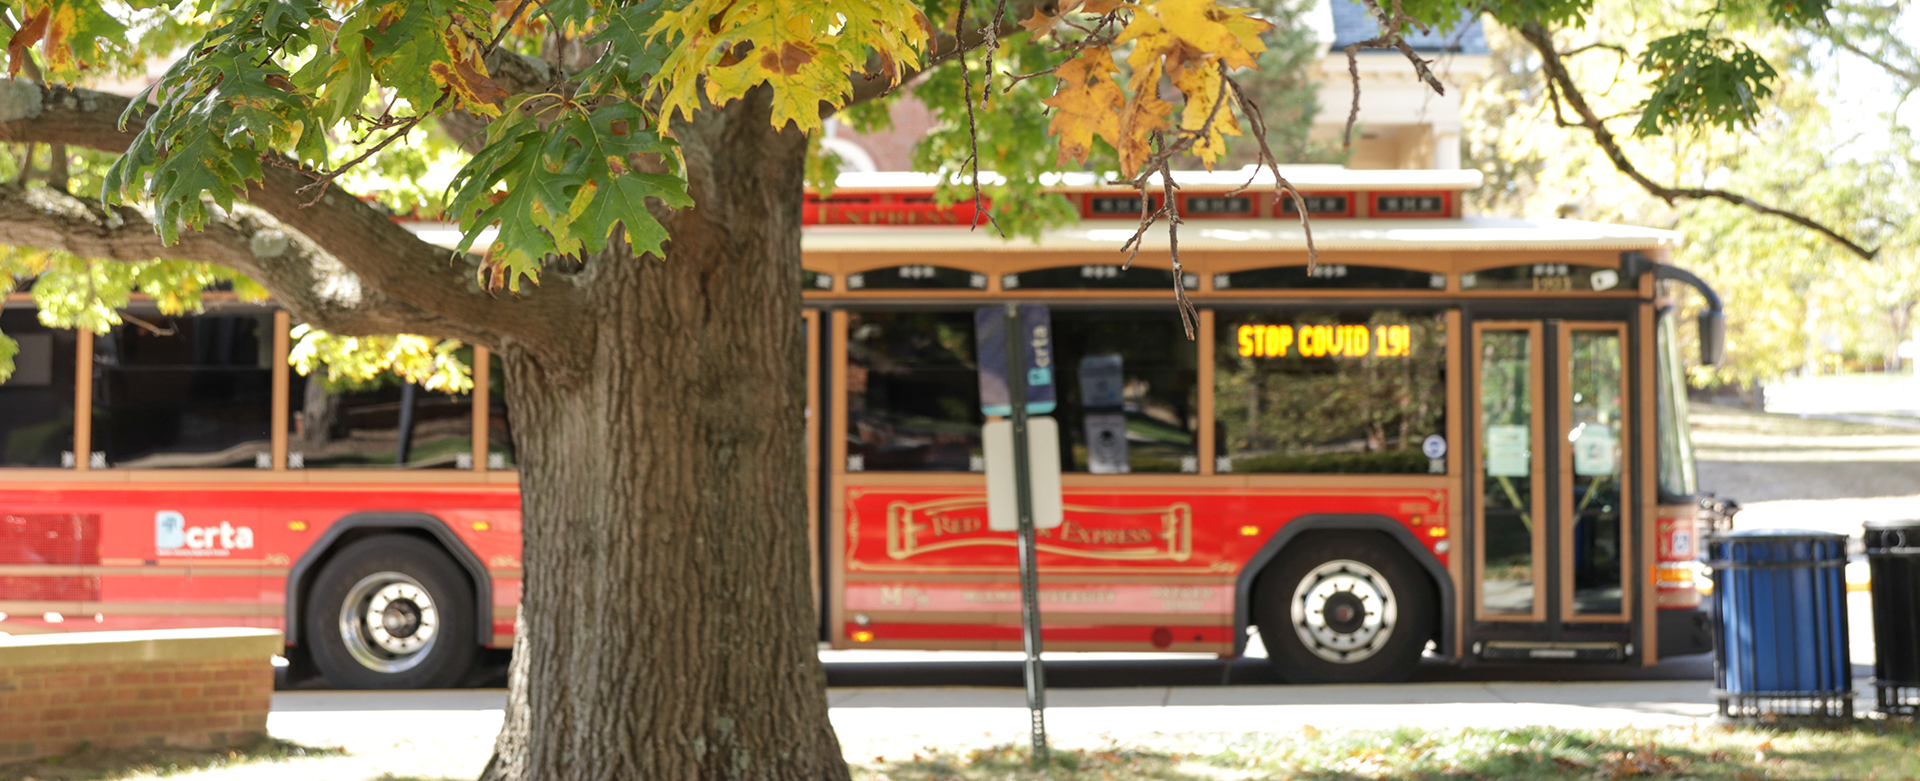 Trolley under Fall tree with